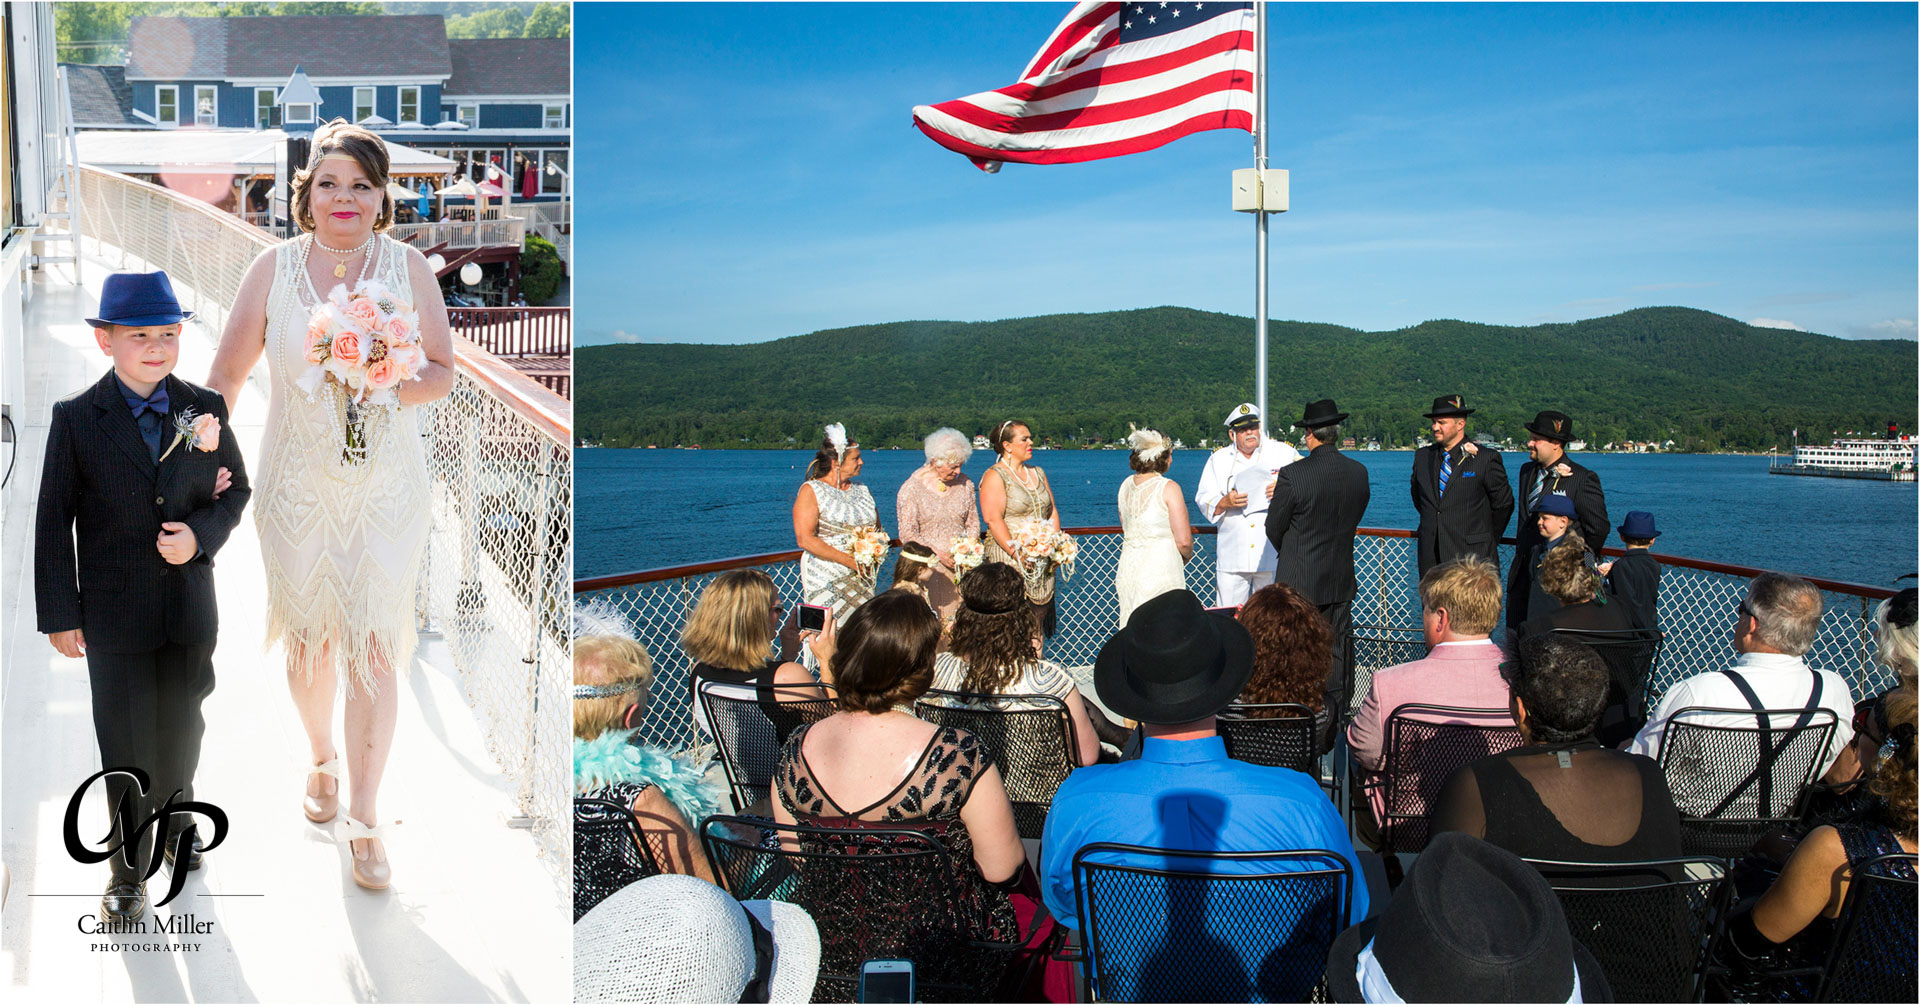 bombard-15.jpg from Jan and Robert's vow renewal on shoreline Cruise's Adirondac Boat on Lake George, NY by Saratoga Wedding Photographer Caitlin Miller Photography. Lake George Wedding Photographer. Stamford wedding photographer. Albany wedding photographer. Shoreline Cruises Wedding Photographer. Saratoga Wedding Photographer